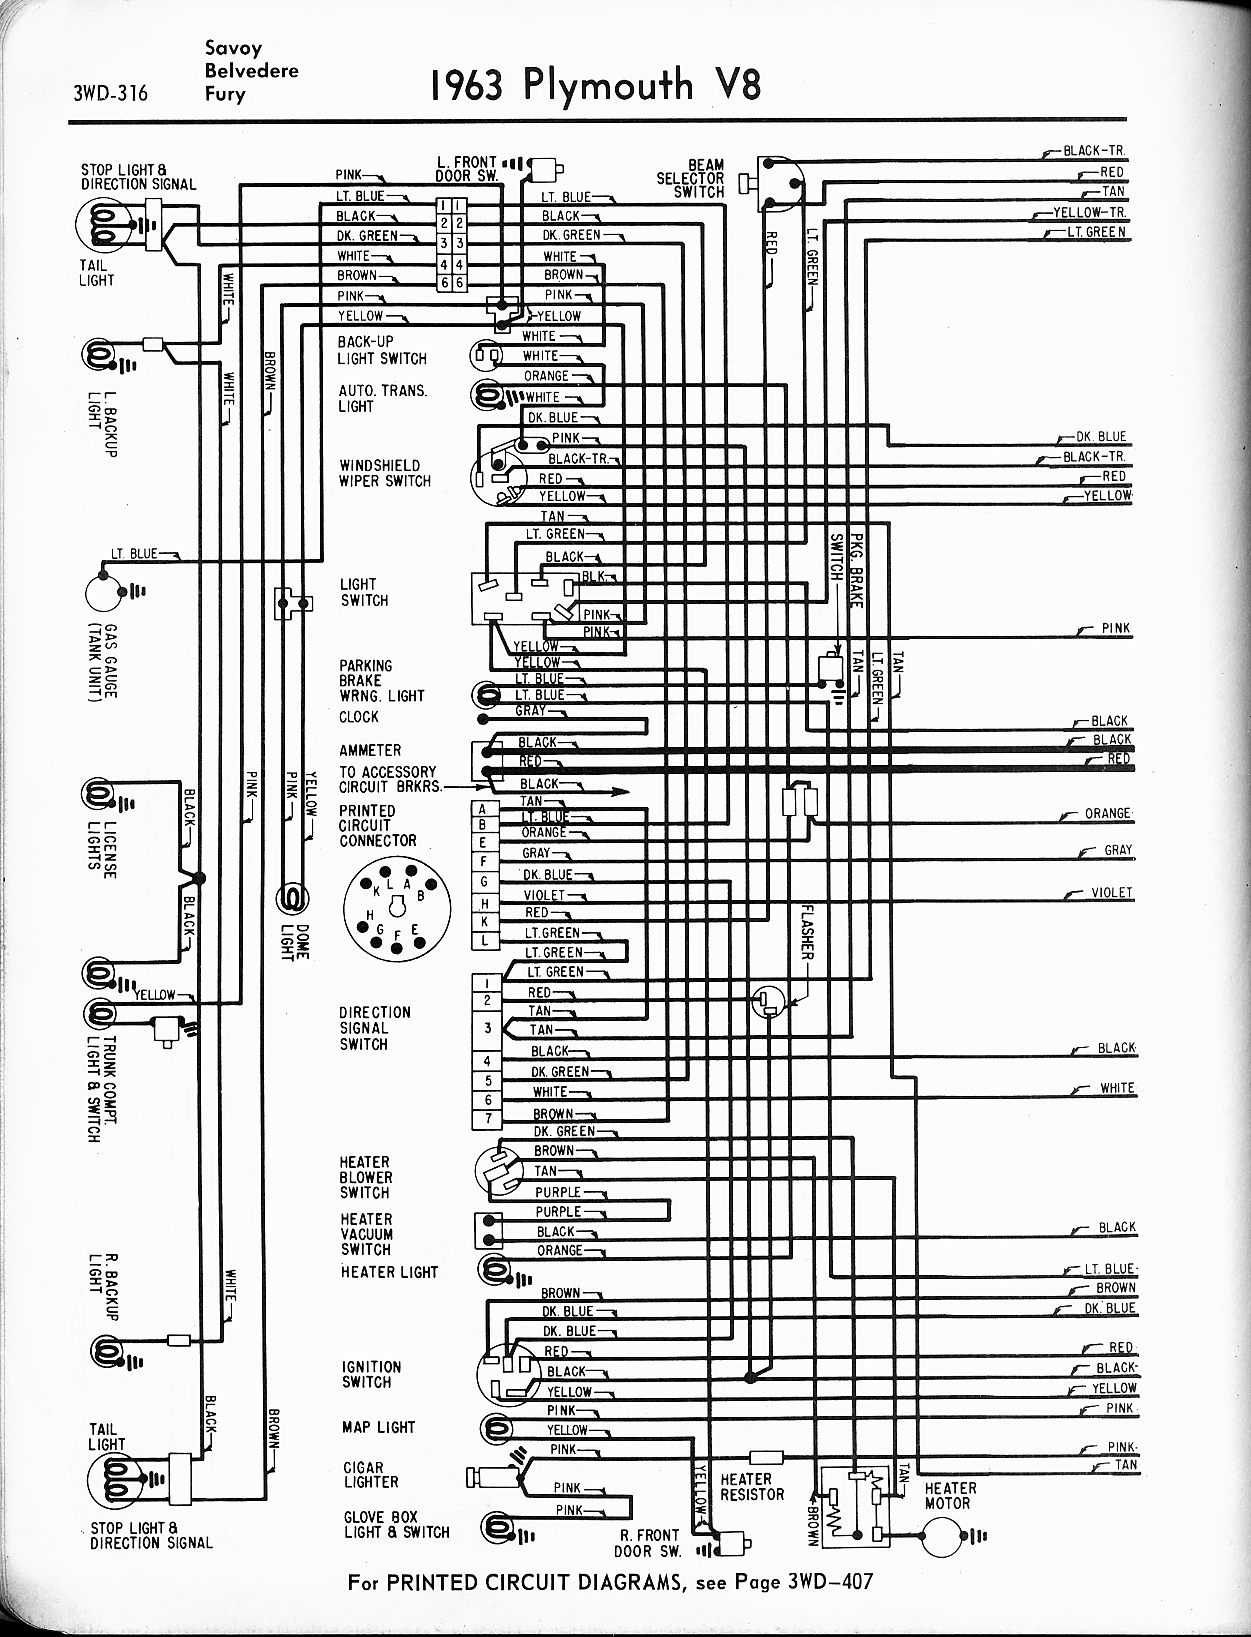 1956 - 1965 plymouth wiring - the old car manual project, Wiring diagram